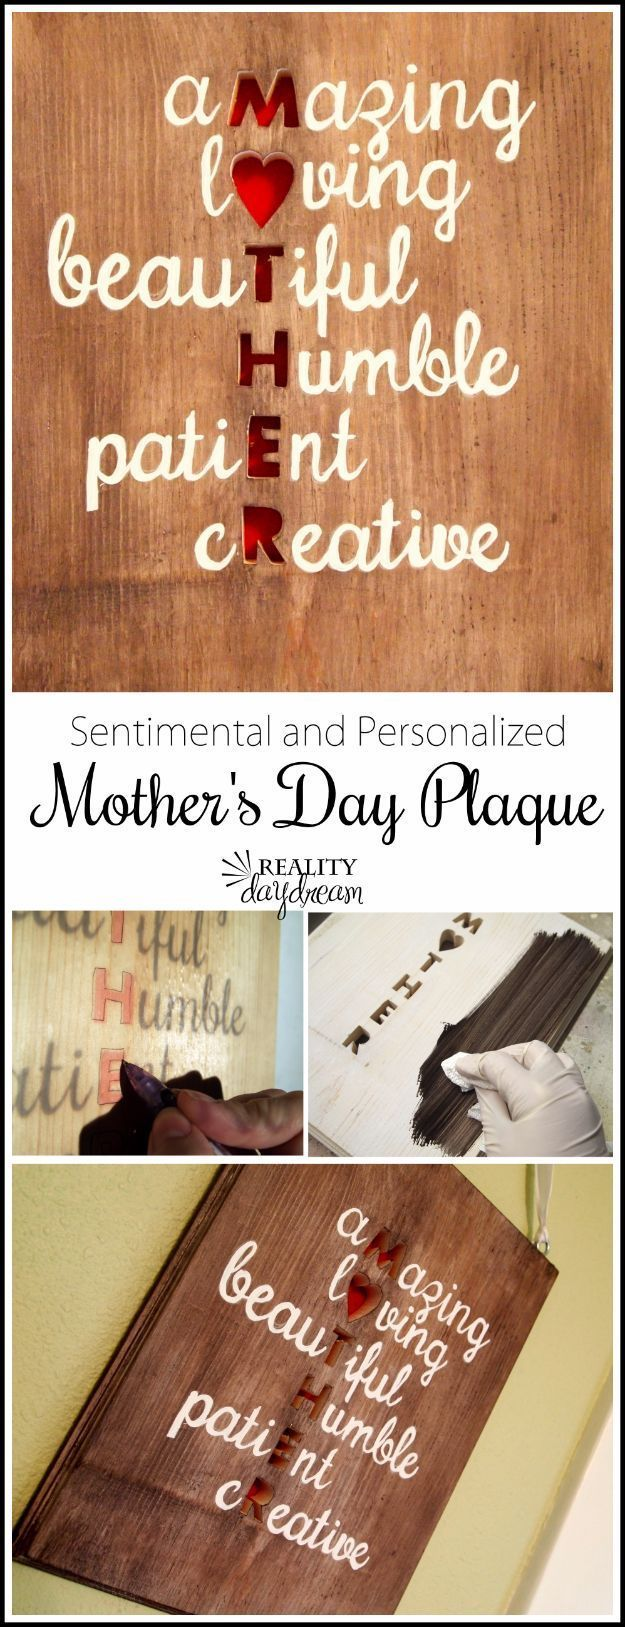 35 Creatively Thoughtful Diy Mother S Day Gifts Diy Mother S Day